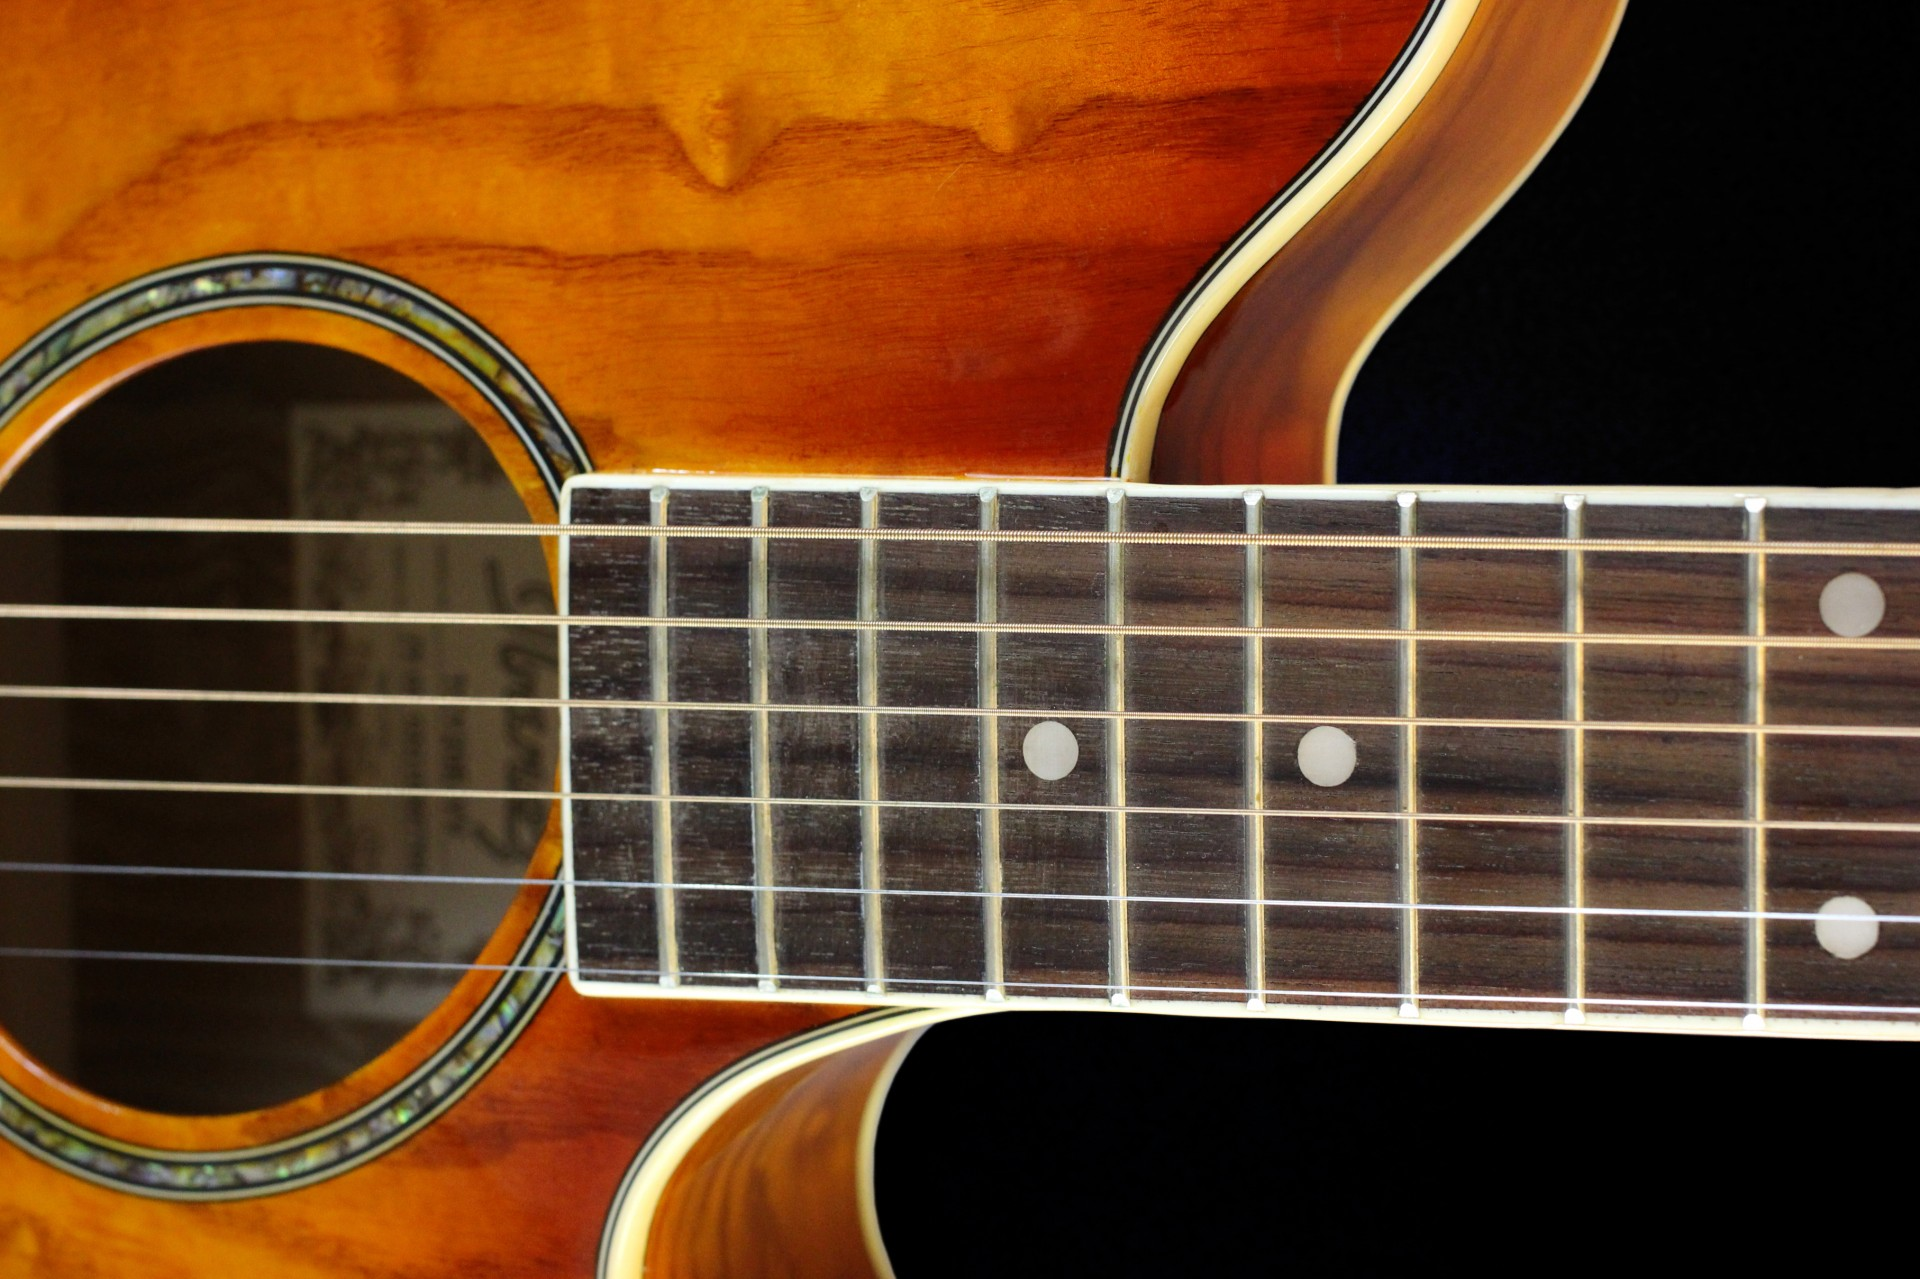 Acoustic Guitar Close-up Free Stock Photo - Public Domain Pictures